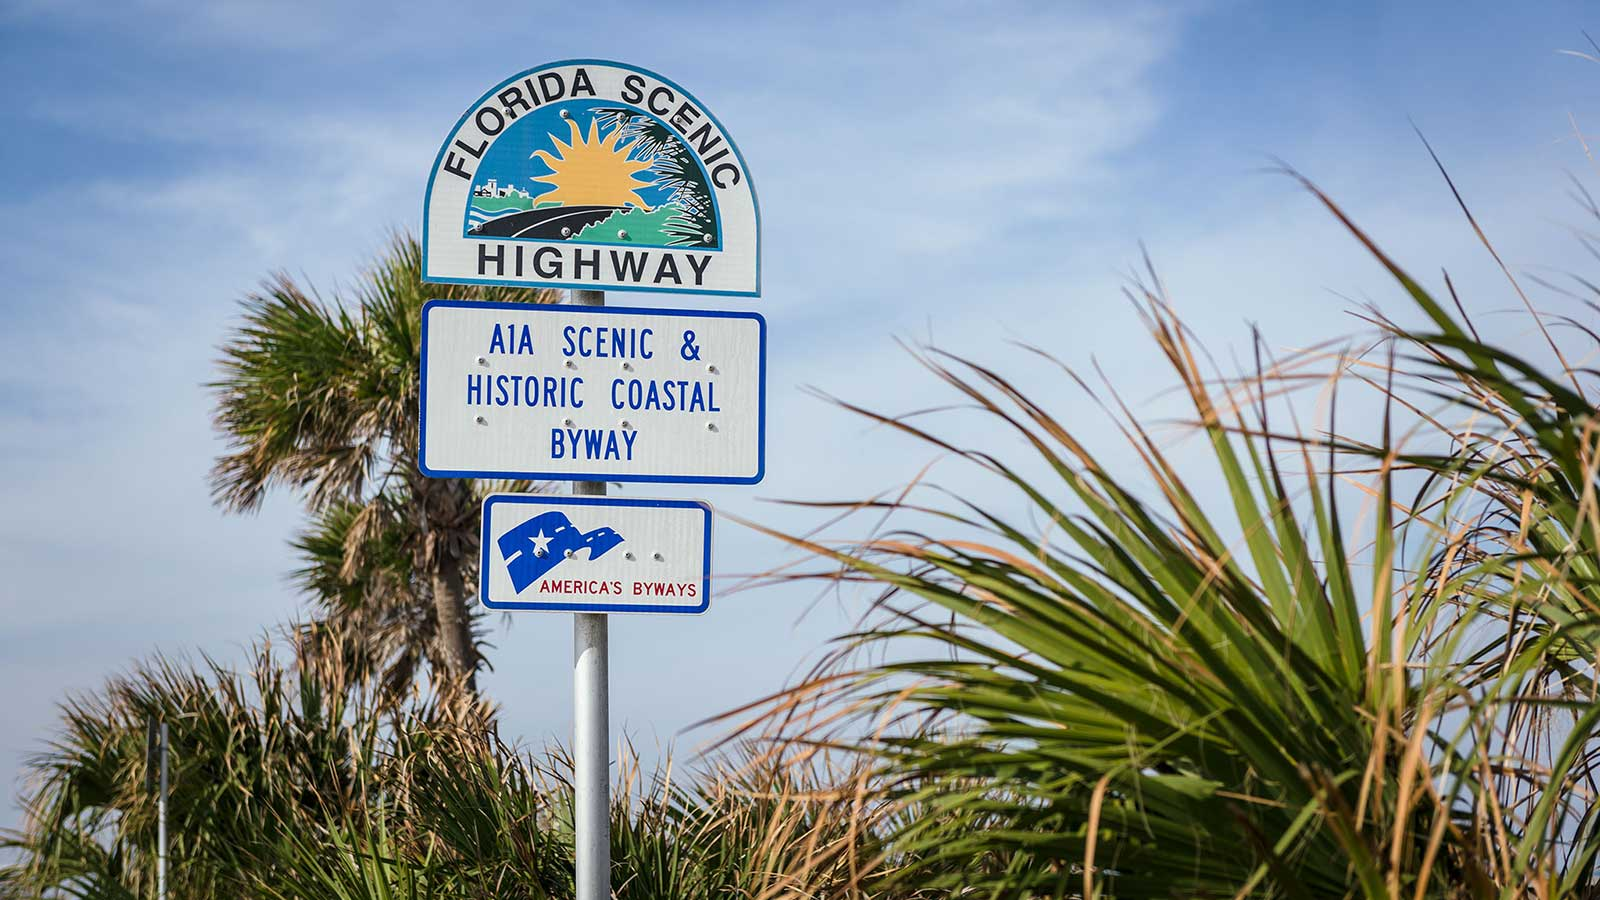 A1A Florida Scenic Highway sign